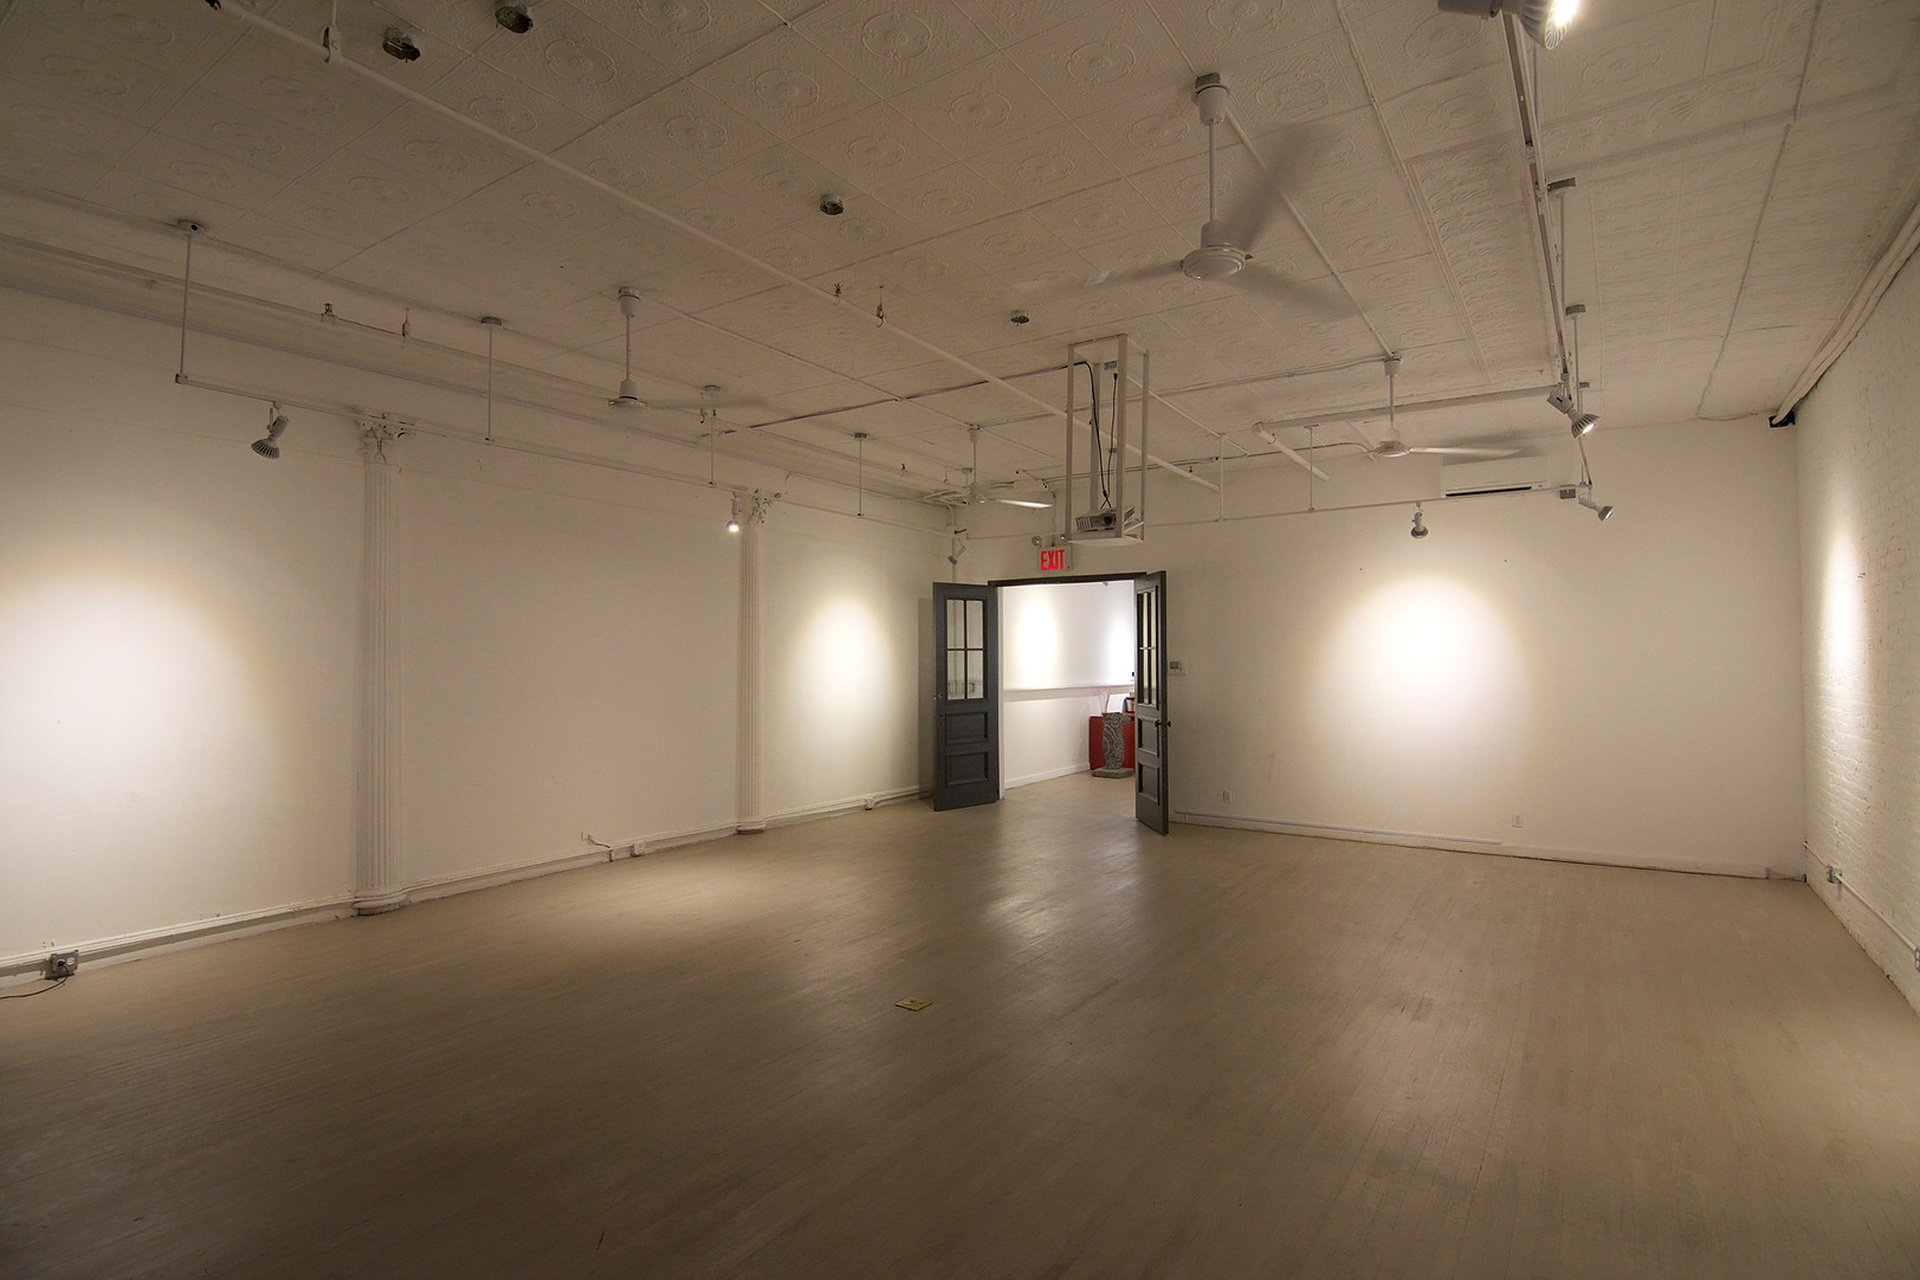 NYC workshop spaces Gallery Infinito image 3